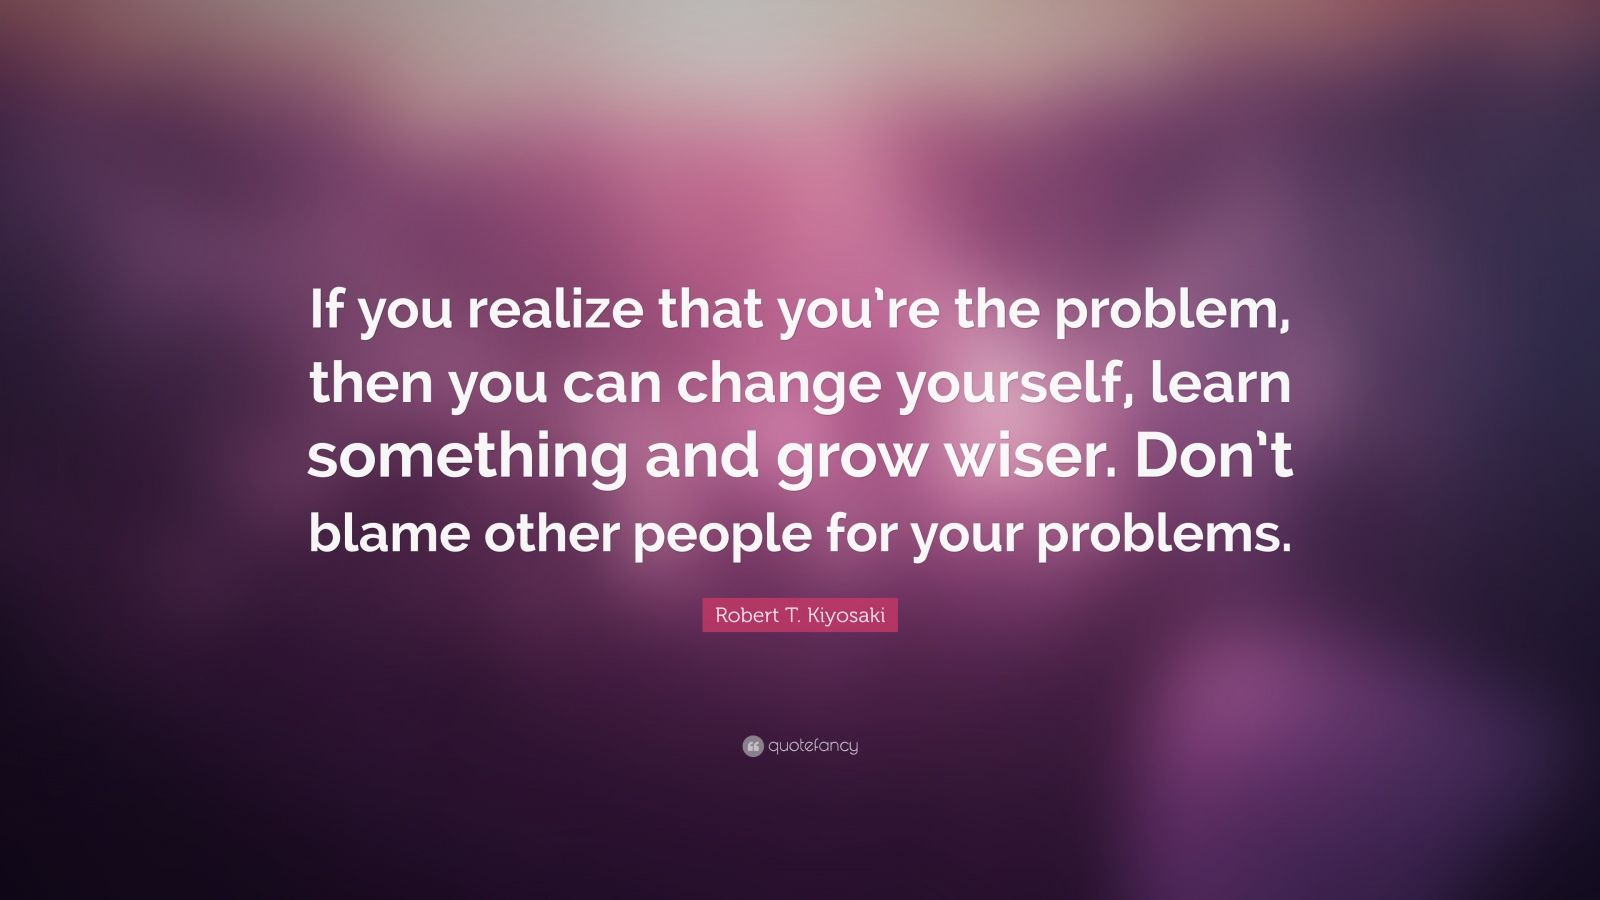 "Robert T. Kiyosaki Quote: ""If you realize that you're the problem, then you can change yourself, learn something and grow wiser. Don't blame other people for your problems."""